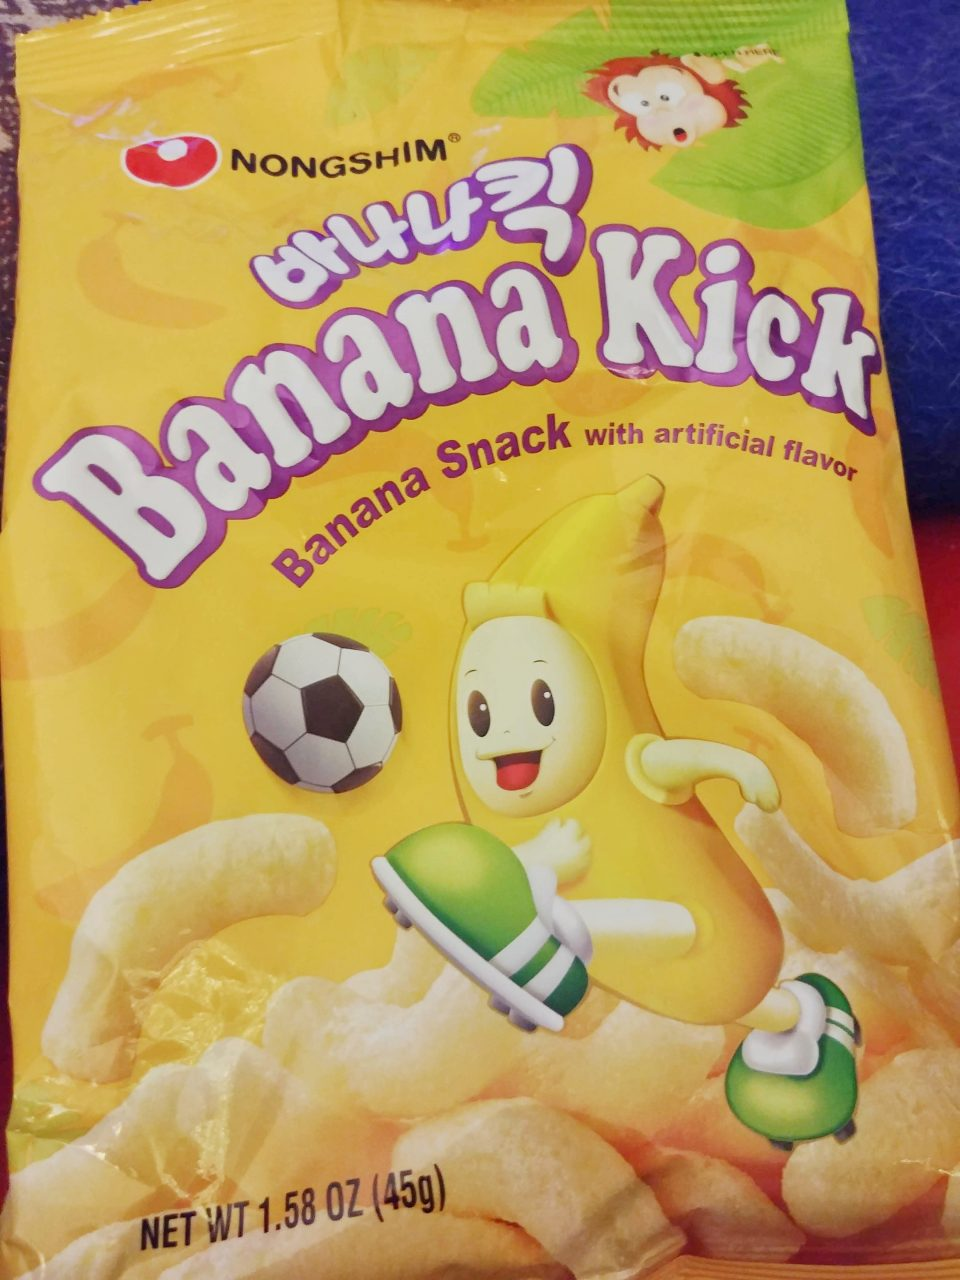 nongshim banana kick puffs snacking here